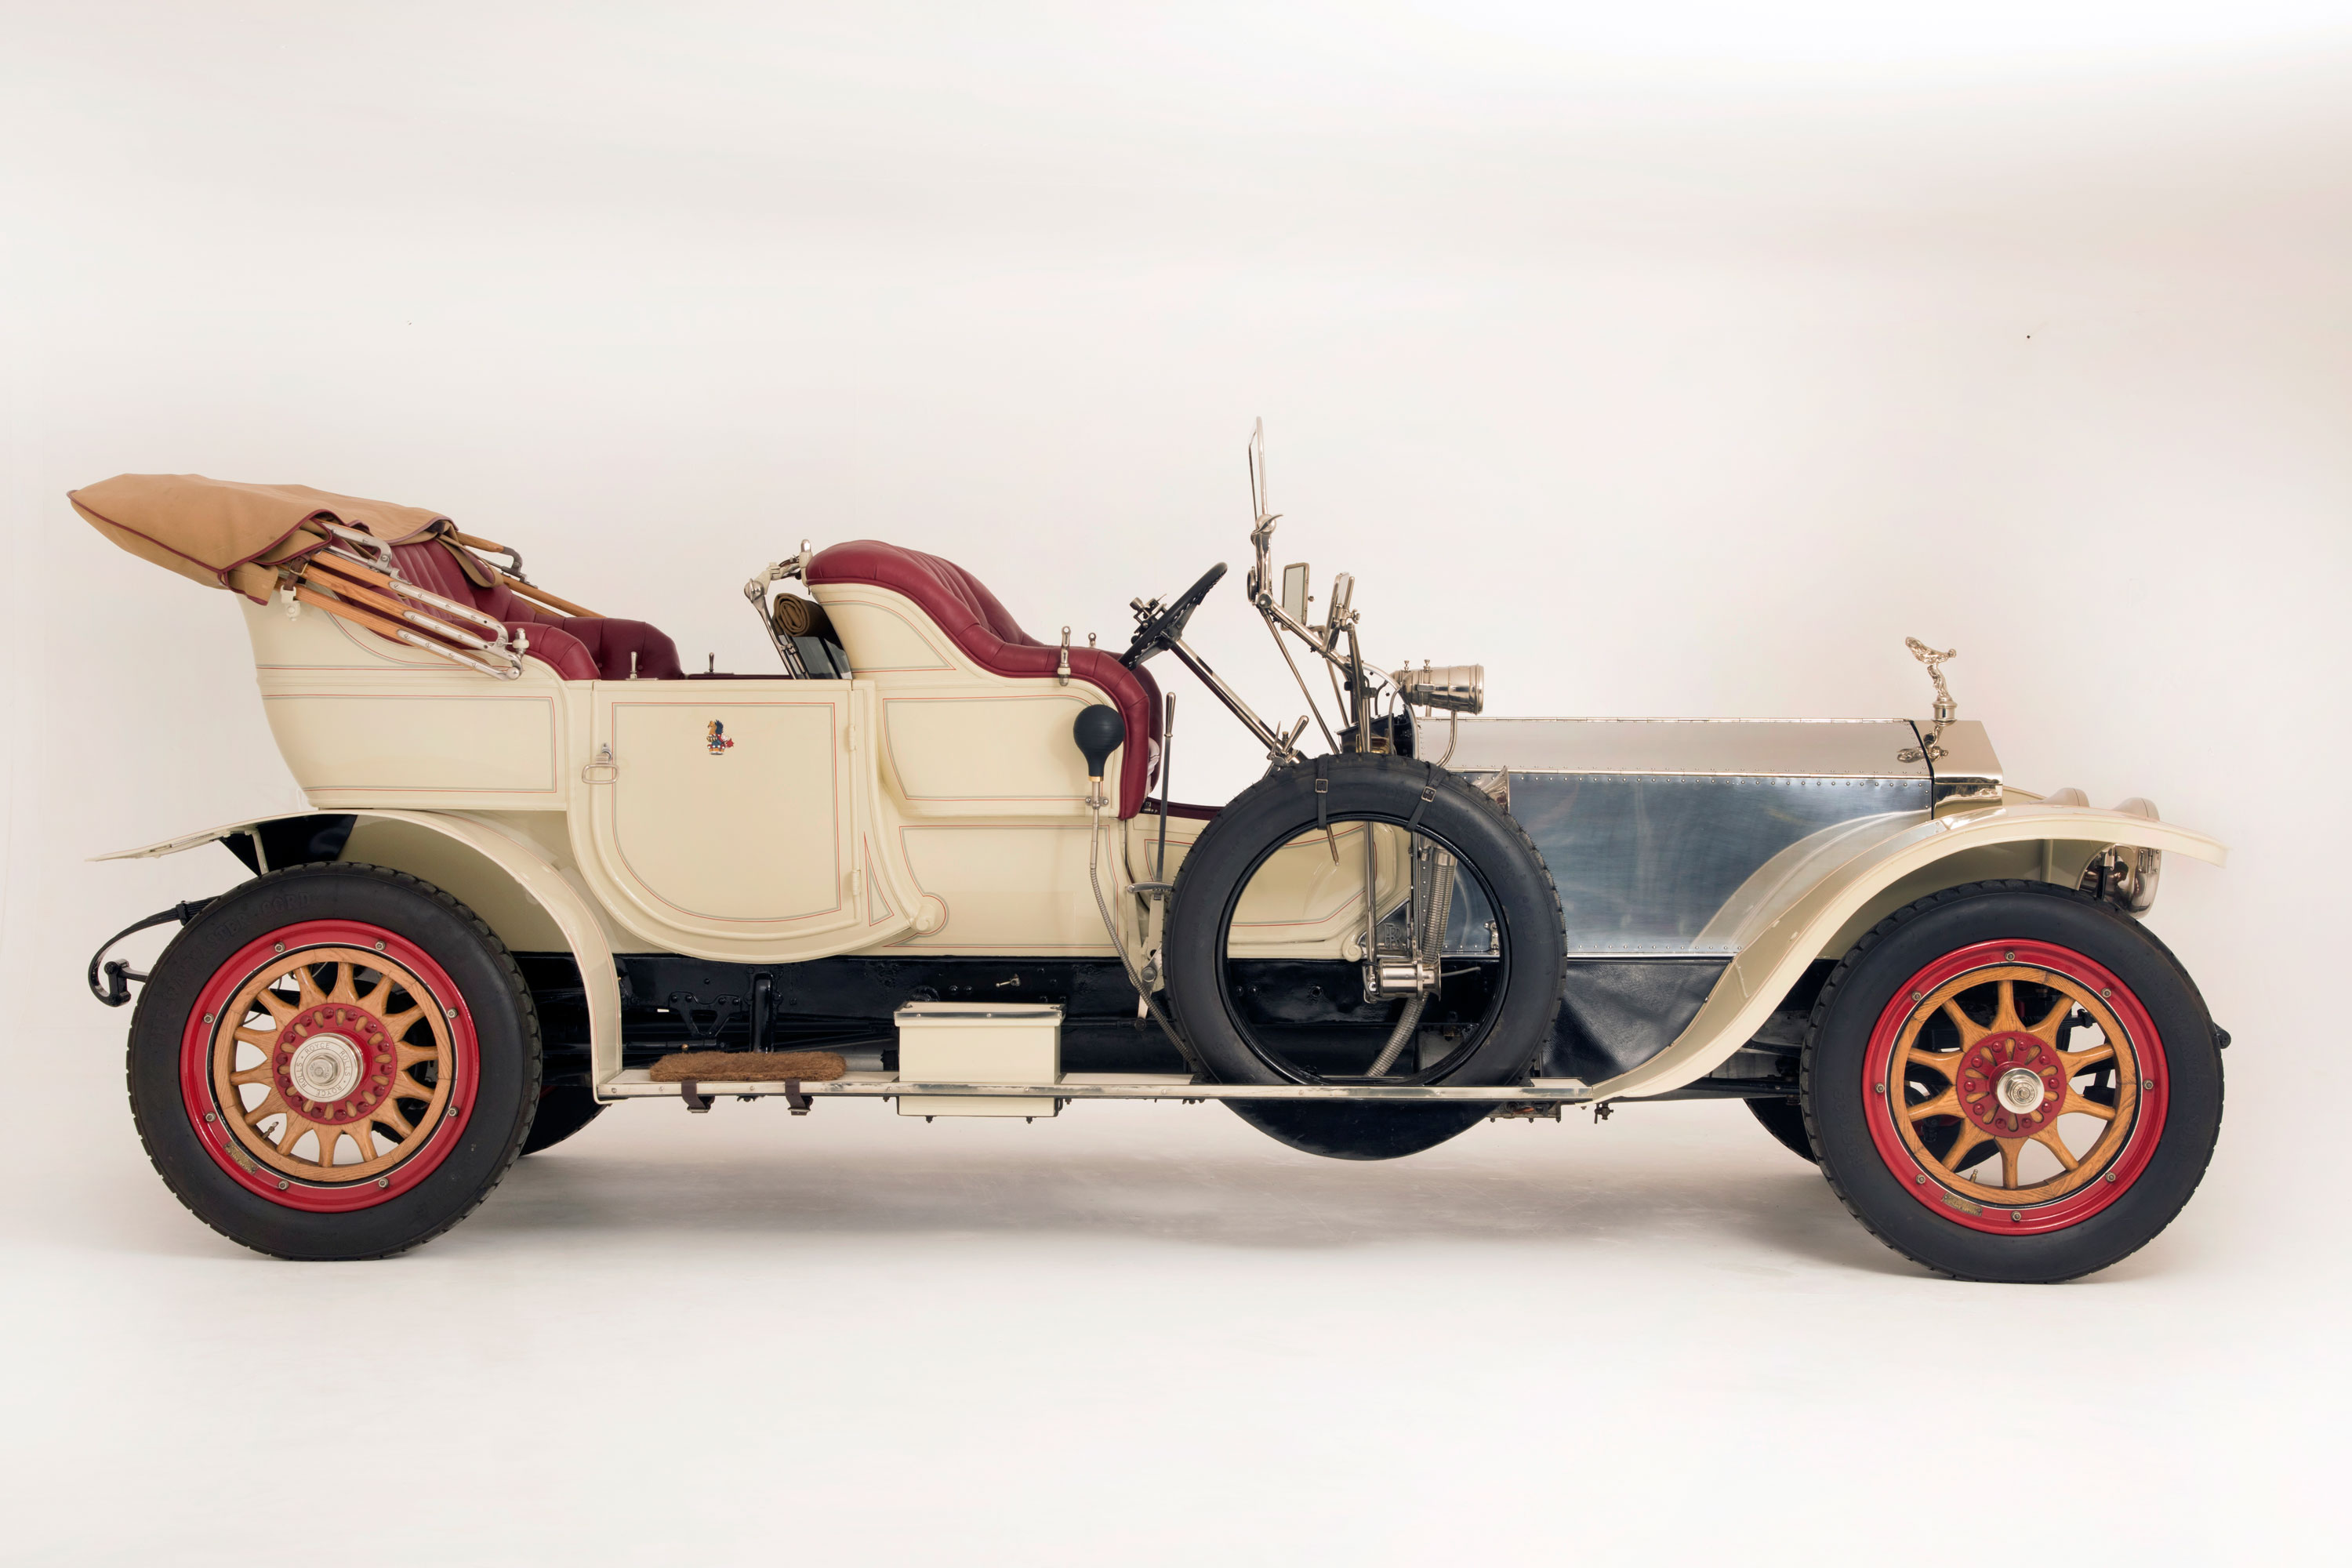 1909 Rolls Royce Silver Ghost in photographic studio